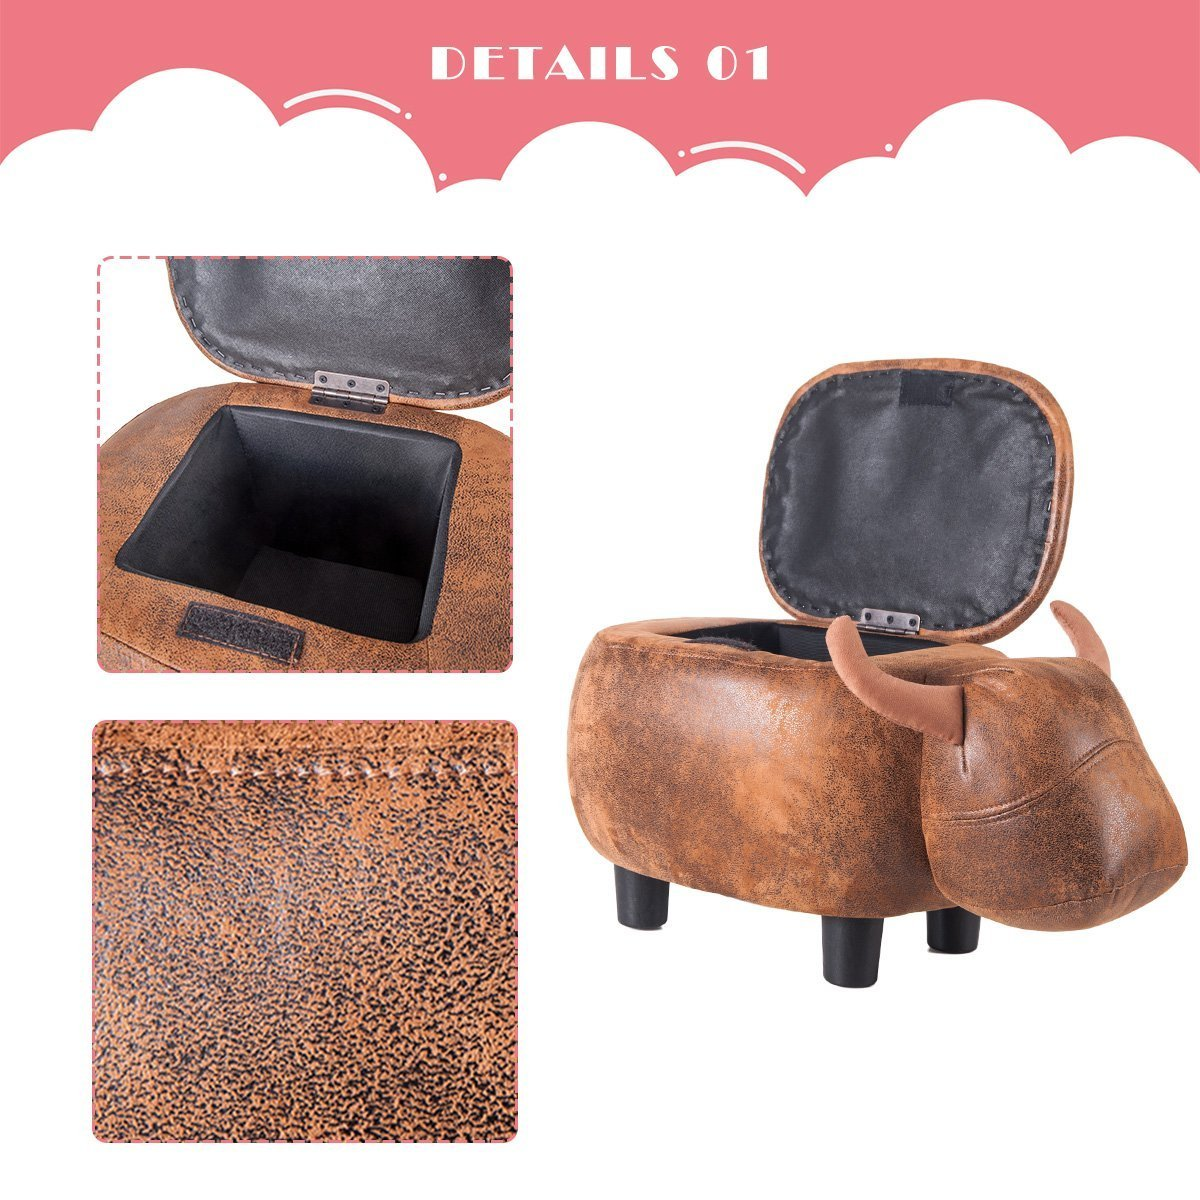 Merax Have-Fun Series Upholstered Ride-on Storage Ottoman Footrest Stool with Vivid Adorable Animal Shape (Brown Buffalo) by Merax (Image #5)